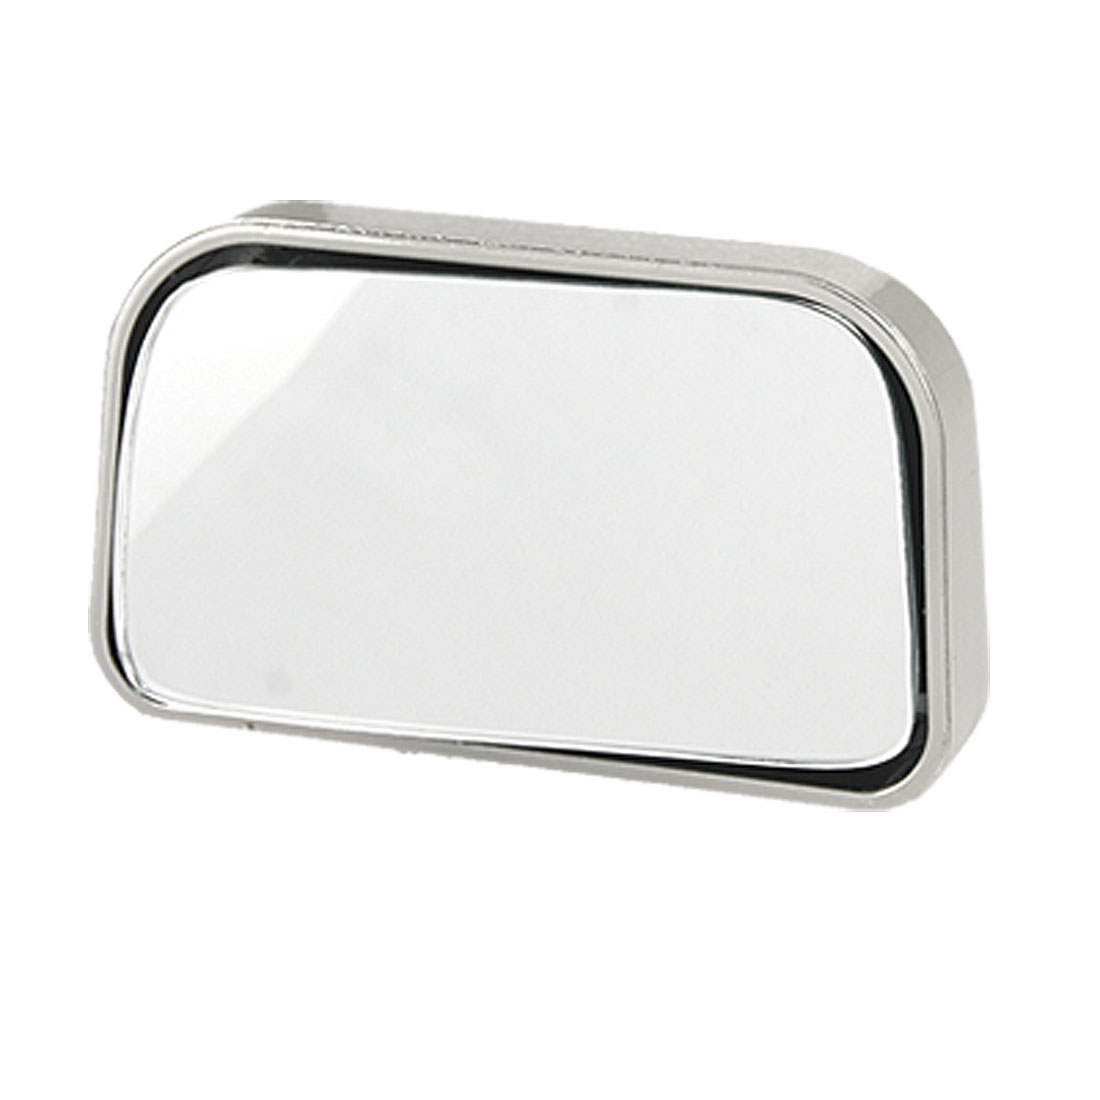 Metal Case Side Angle Adhesive Rearview Blind Spot Mirror for Auto Car